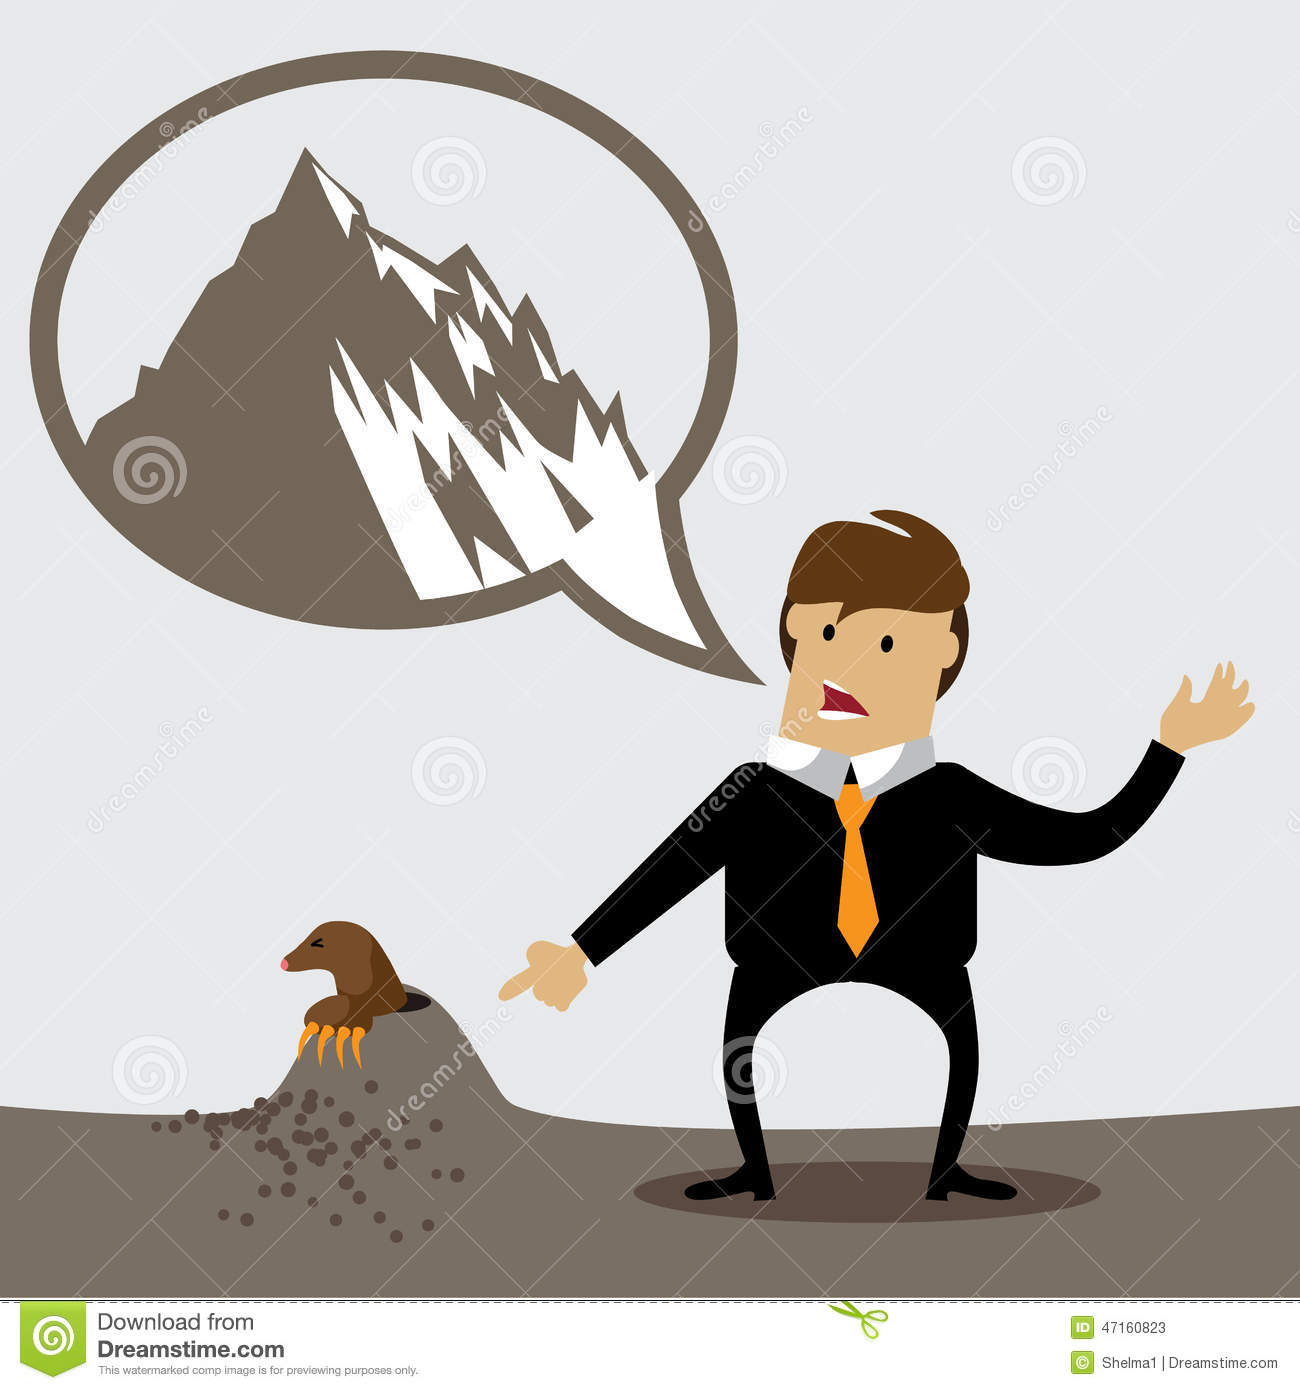 man-making-mountain-out-molehill-eps-vec